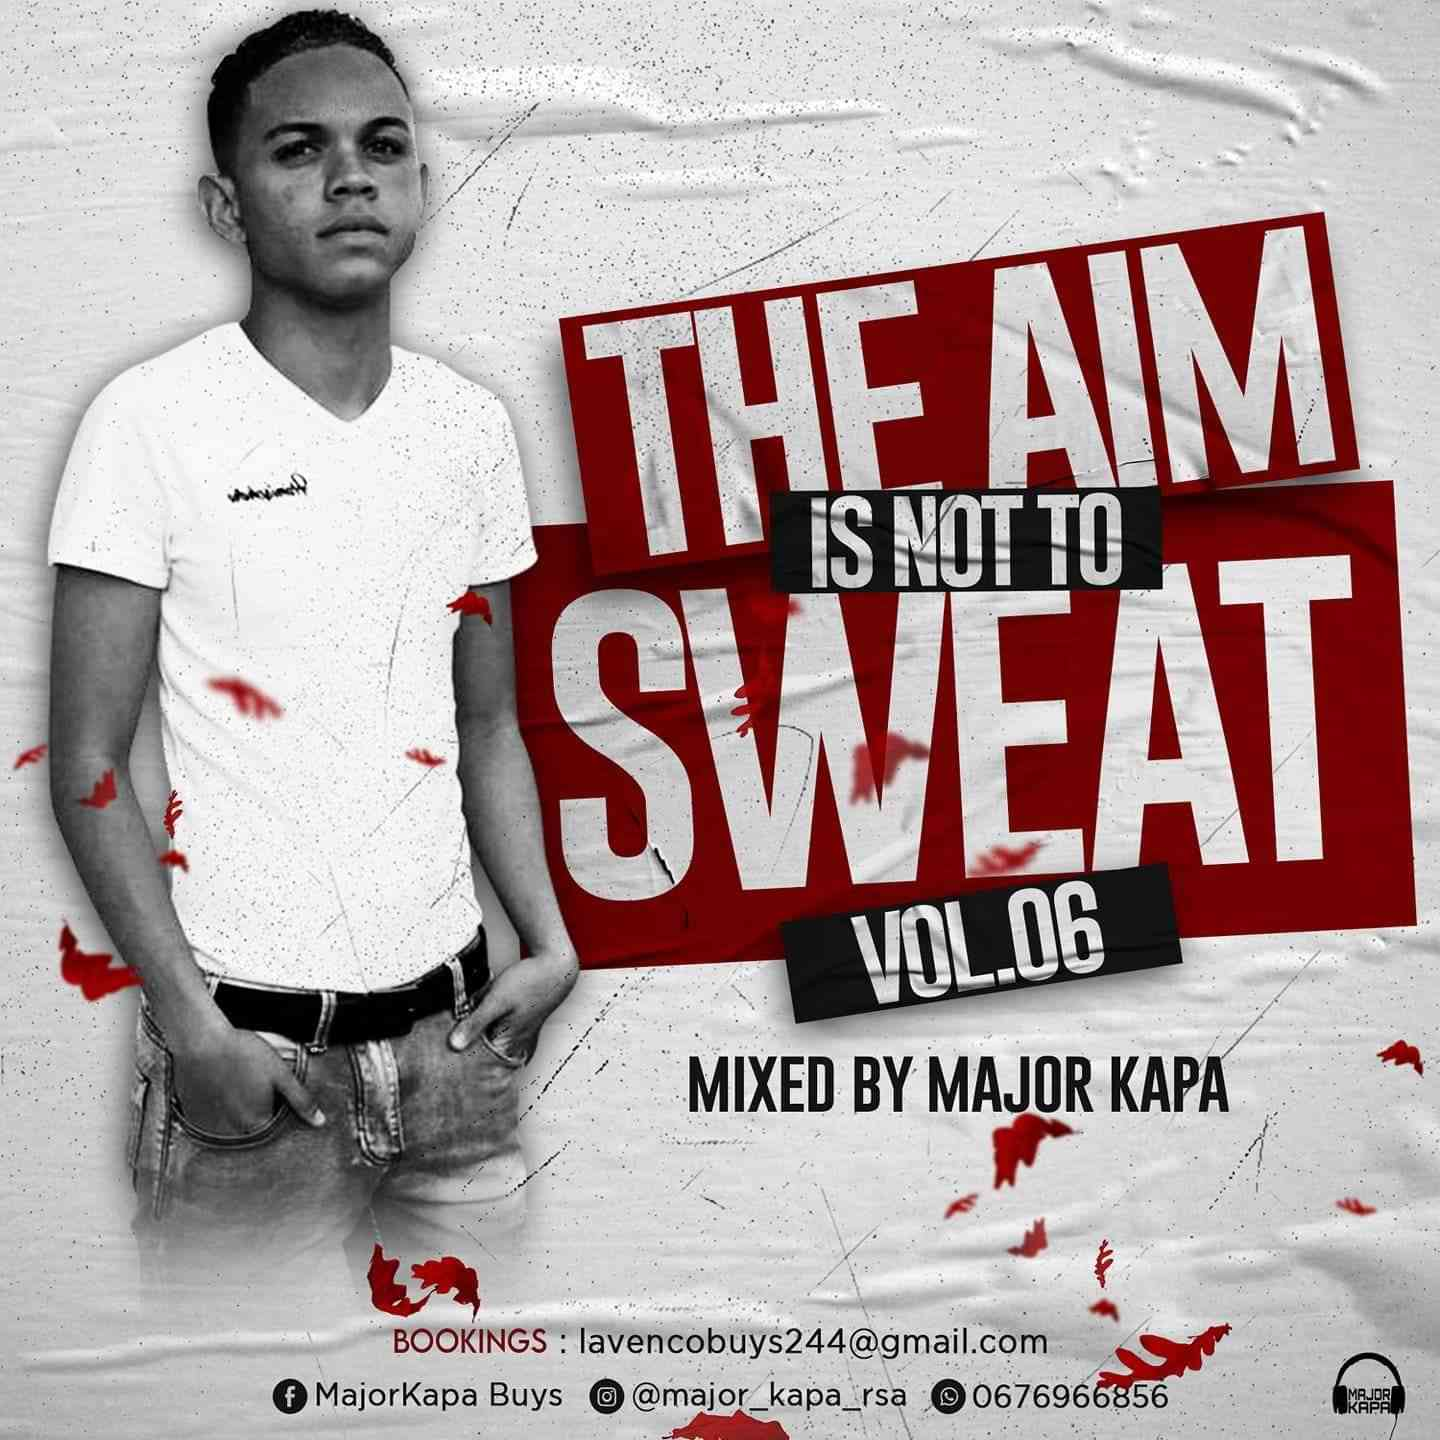 Major Kapa The Aim Is Not To Sweat Vol.06 Mix